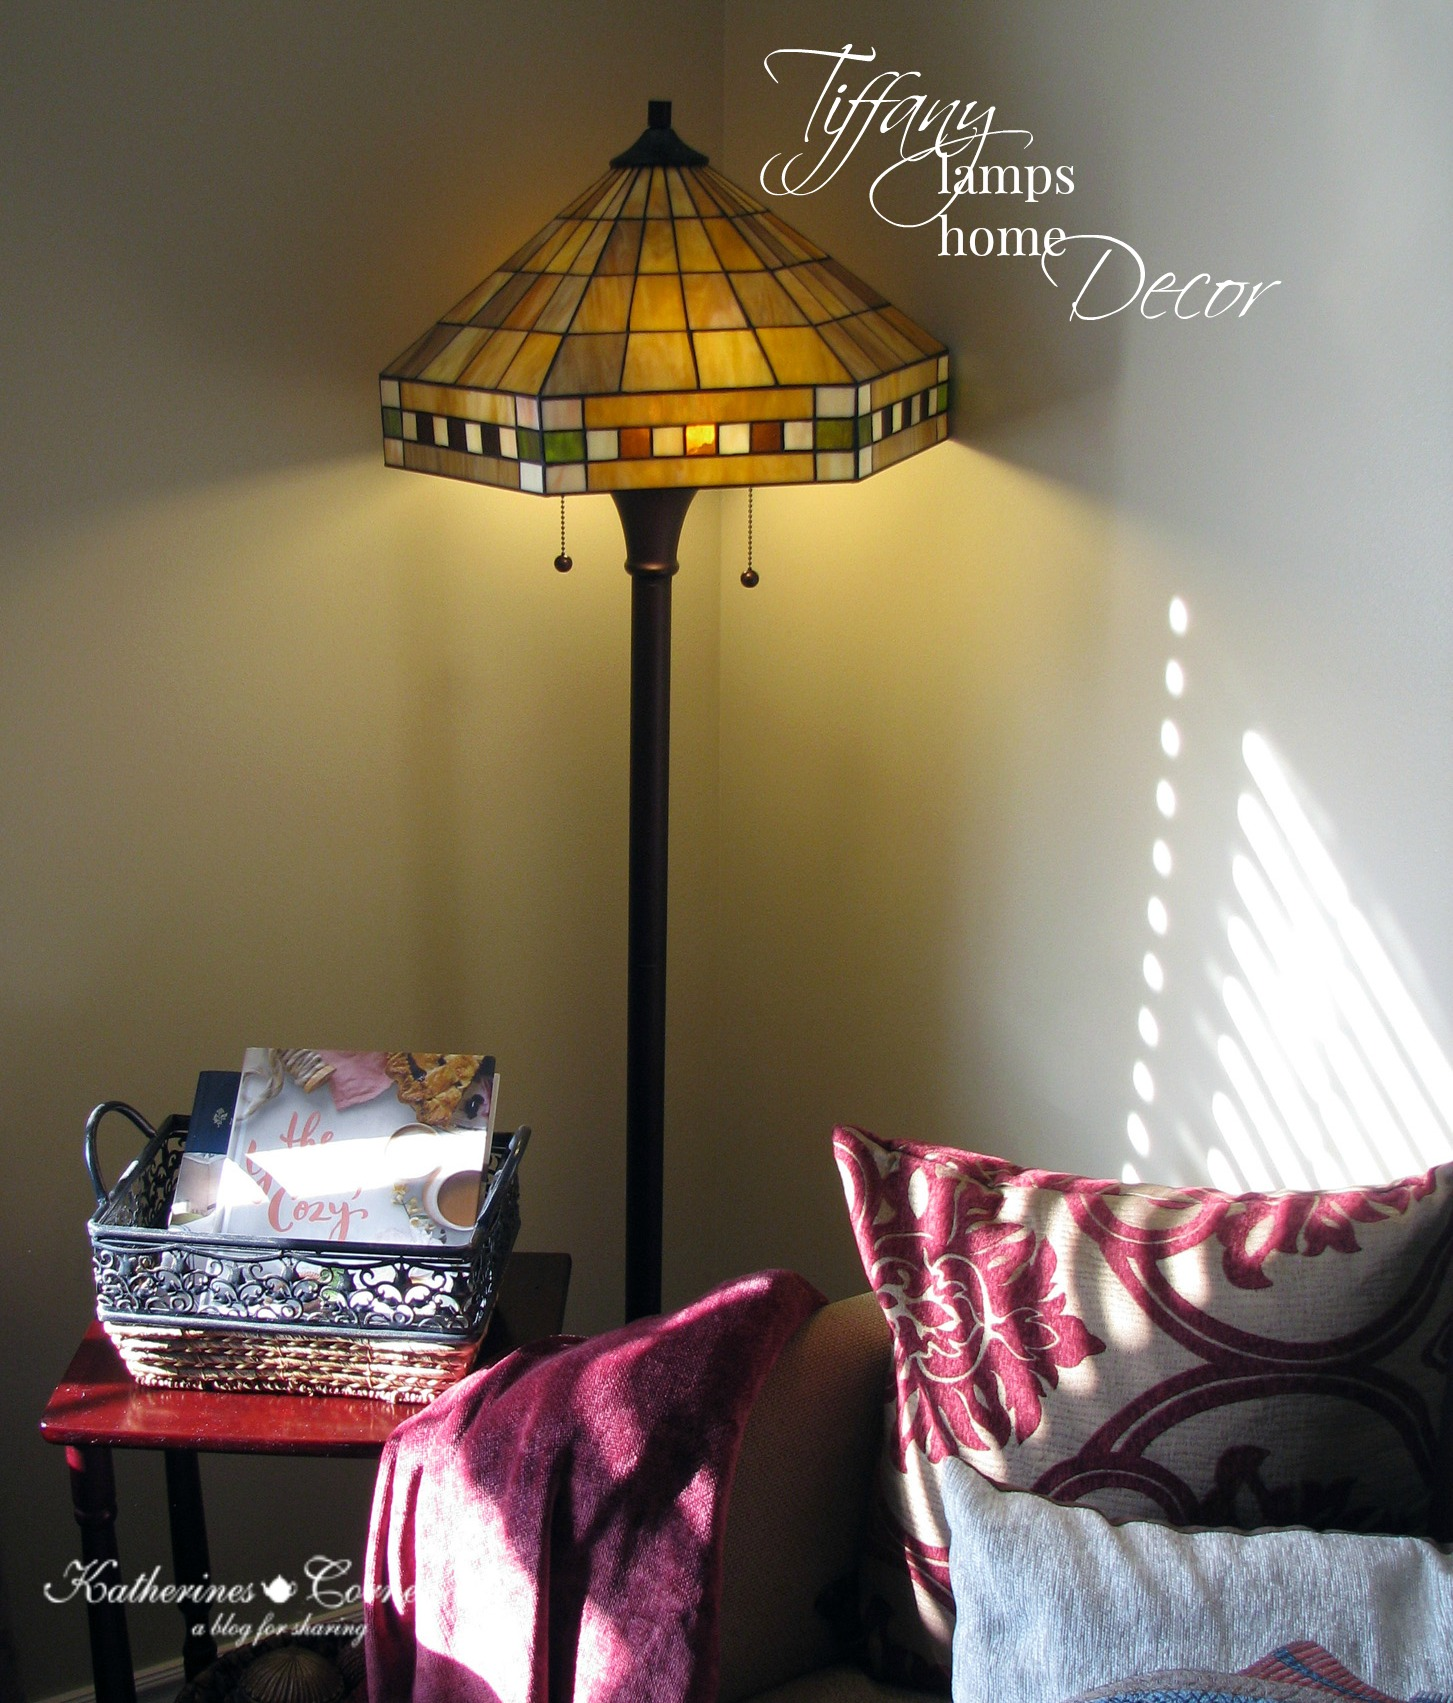 Tiffany Lamps Home Decor